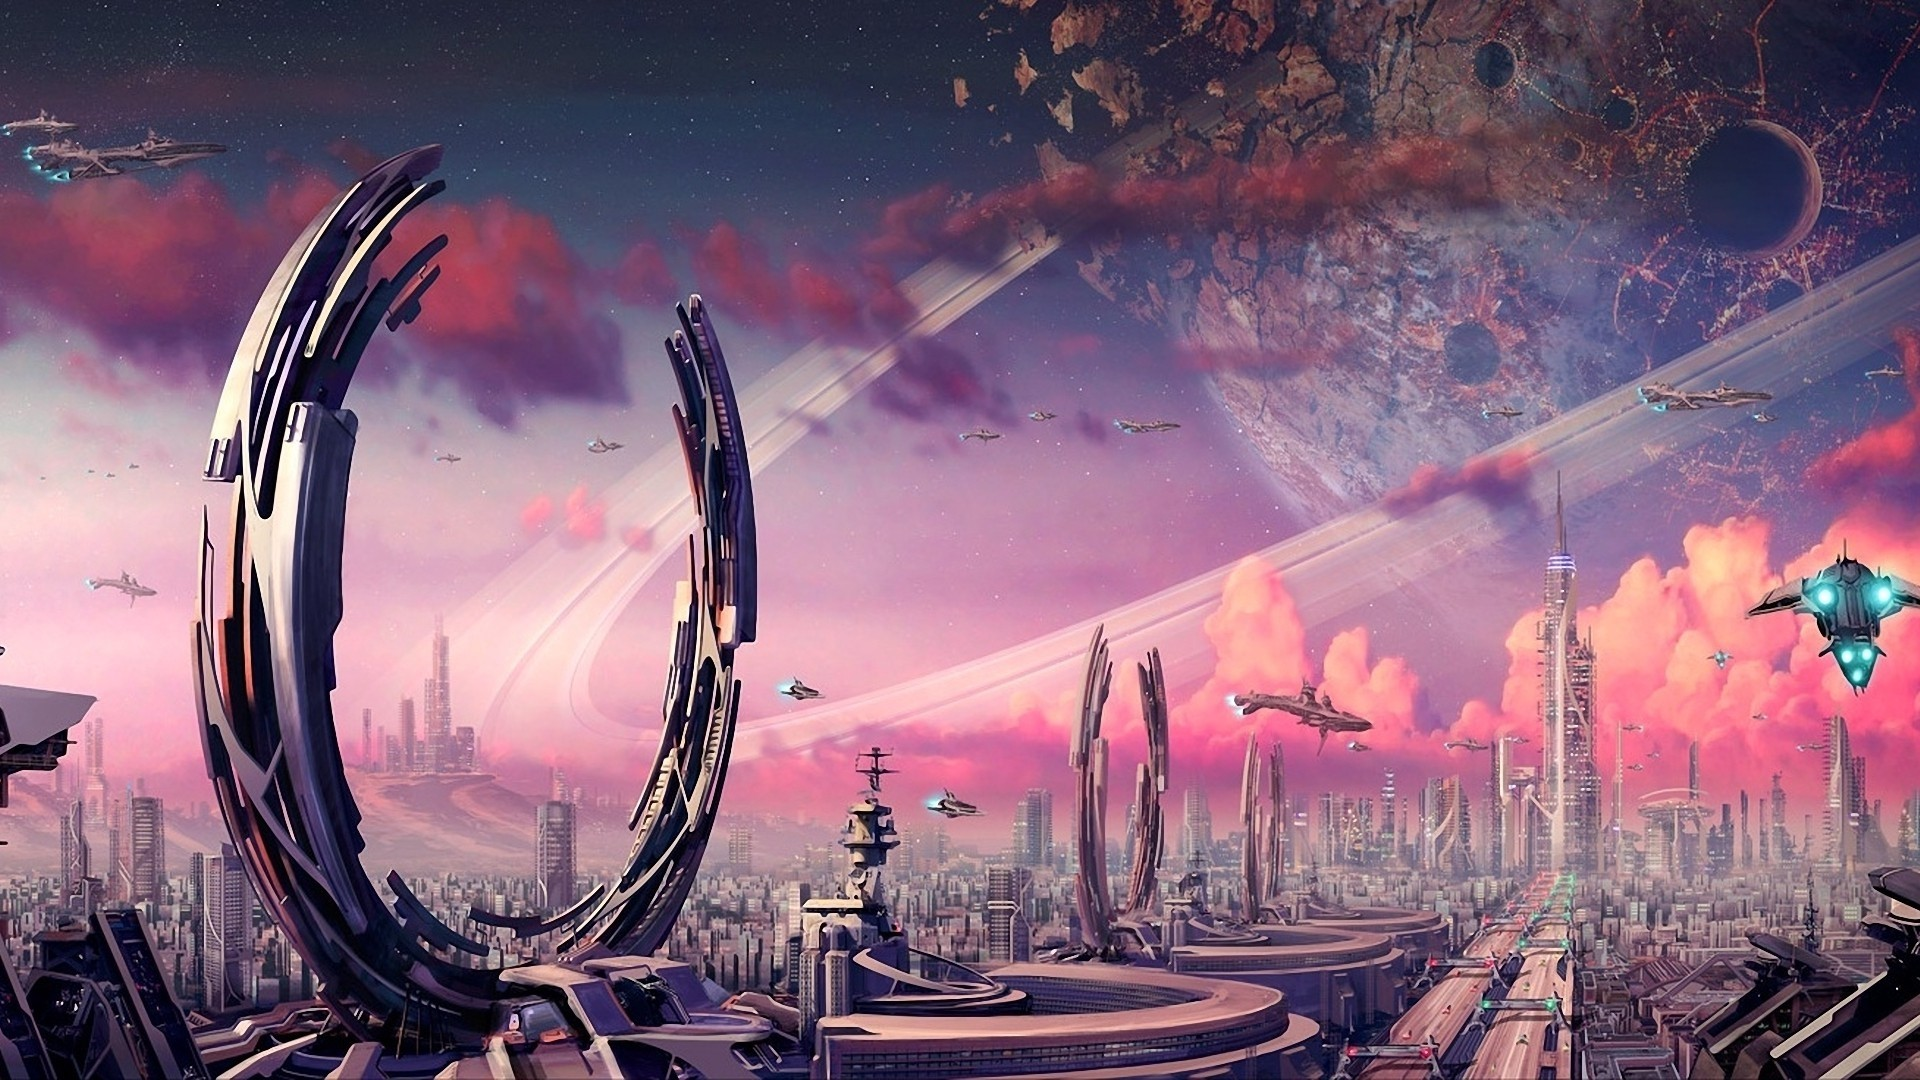 Futuristic Planets Fantasy Art Spaceships Science Fiction Artwork Airship  Cities Wallpaper At 3d Wallpapers